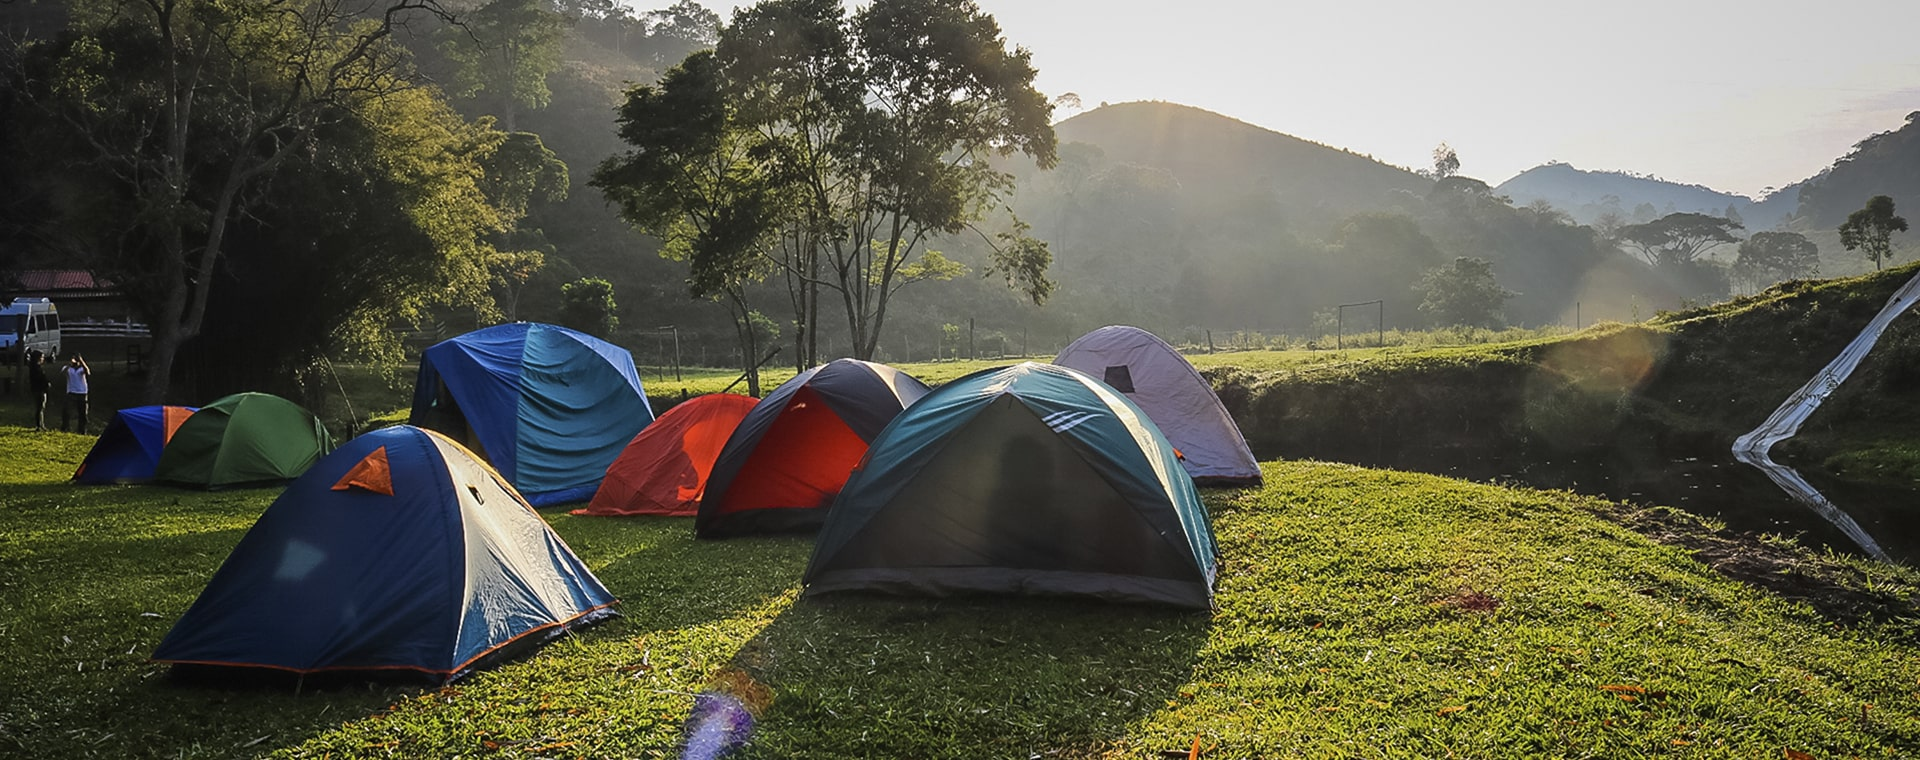 Workshop de Camping para Iniciantes